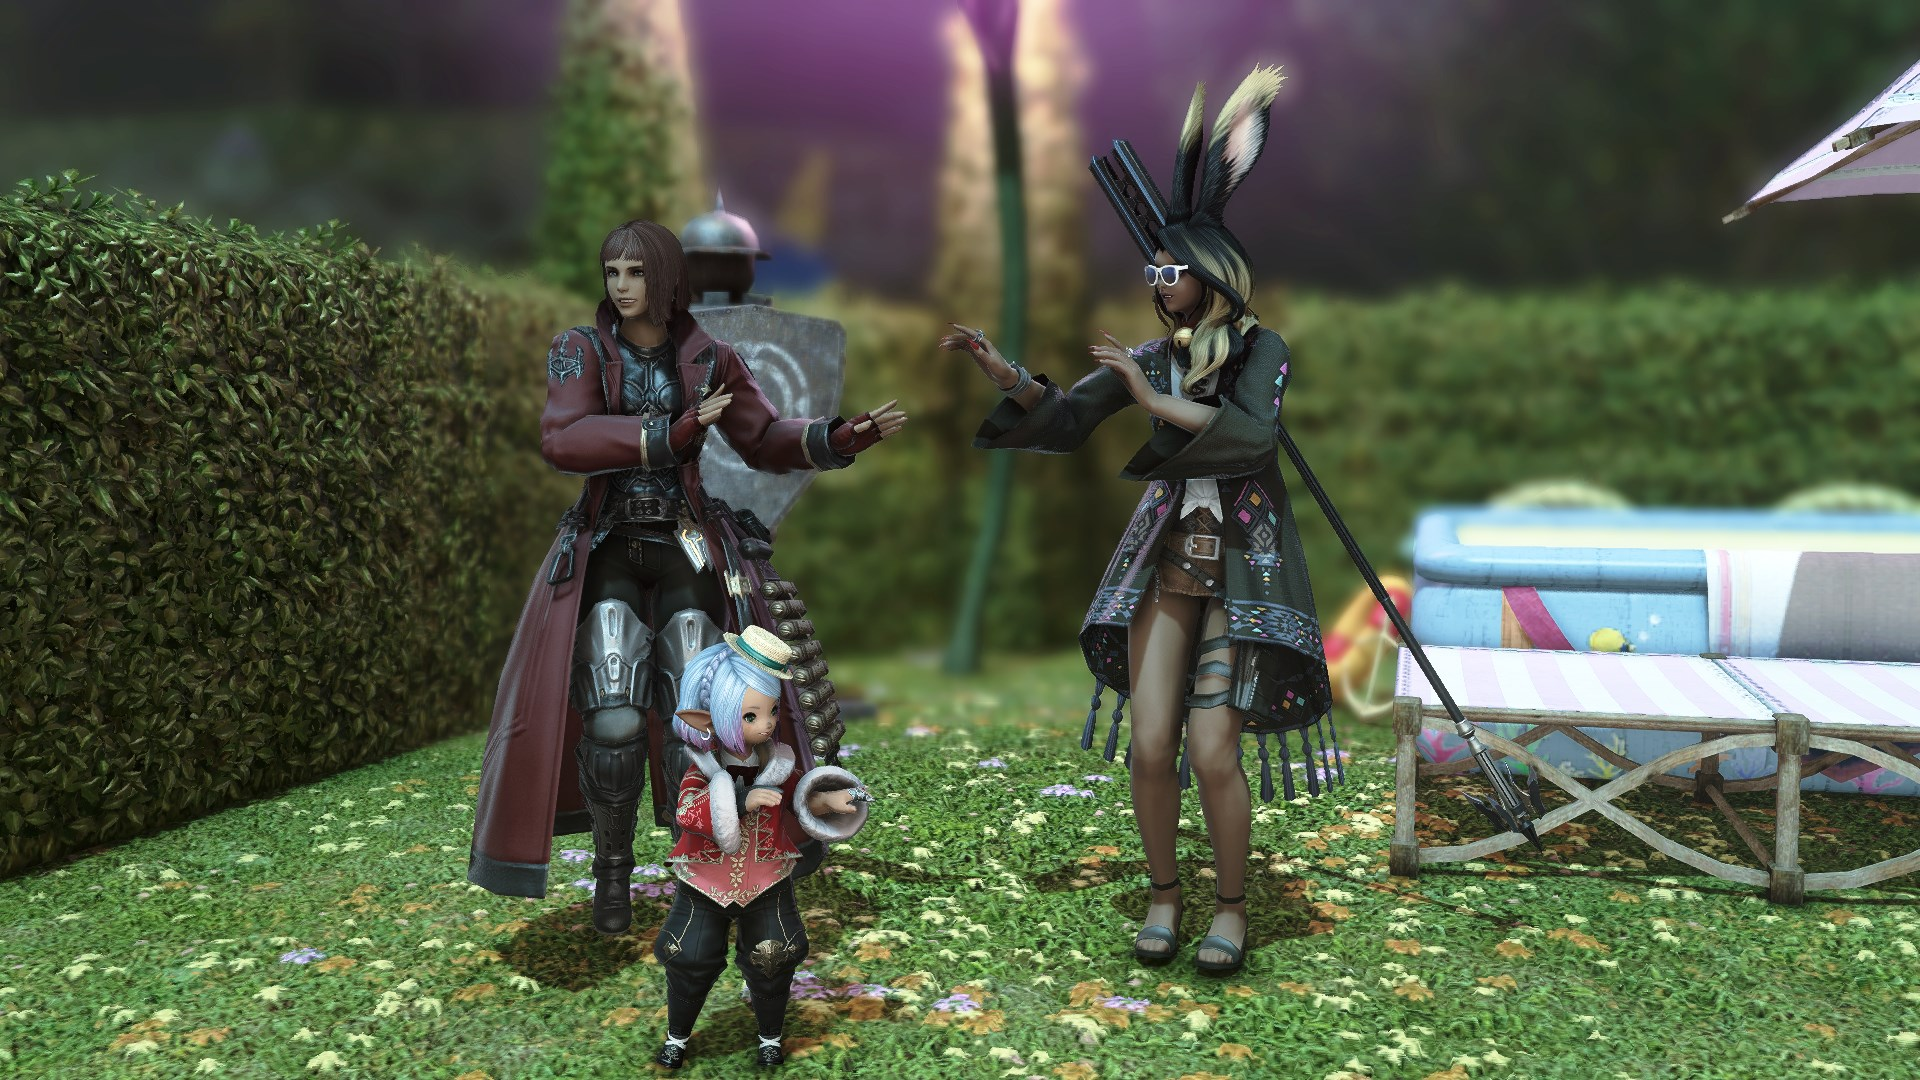 Three Final Fantasy characters do a hula-like dance in a front yard